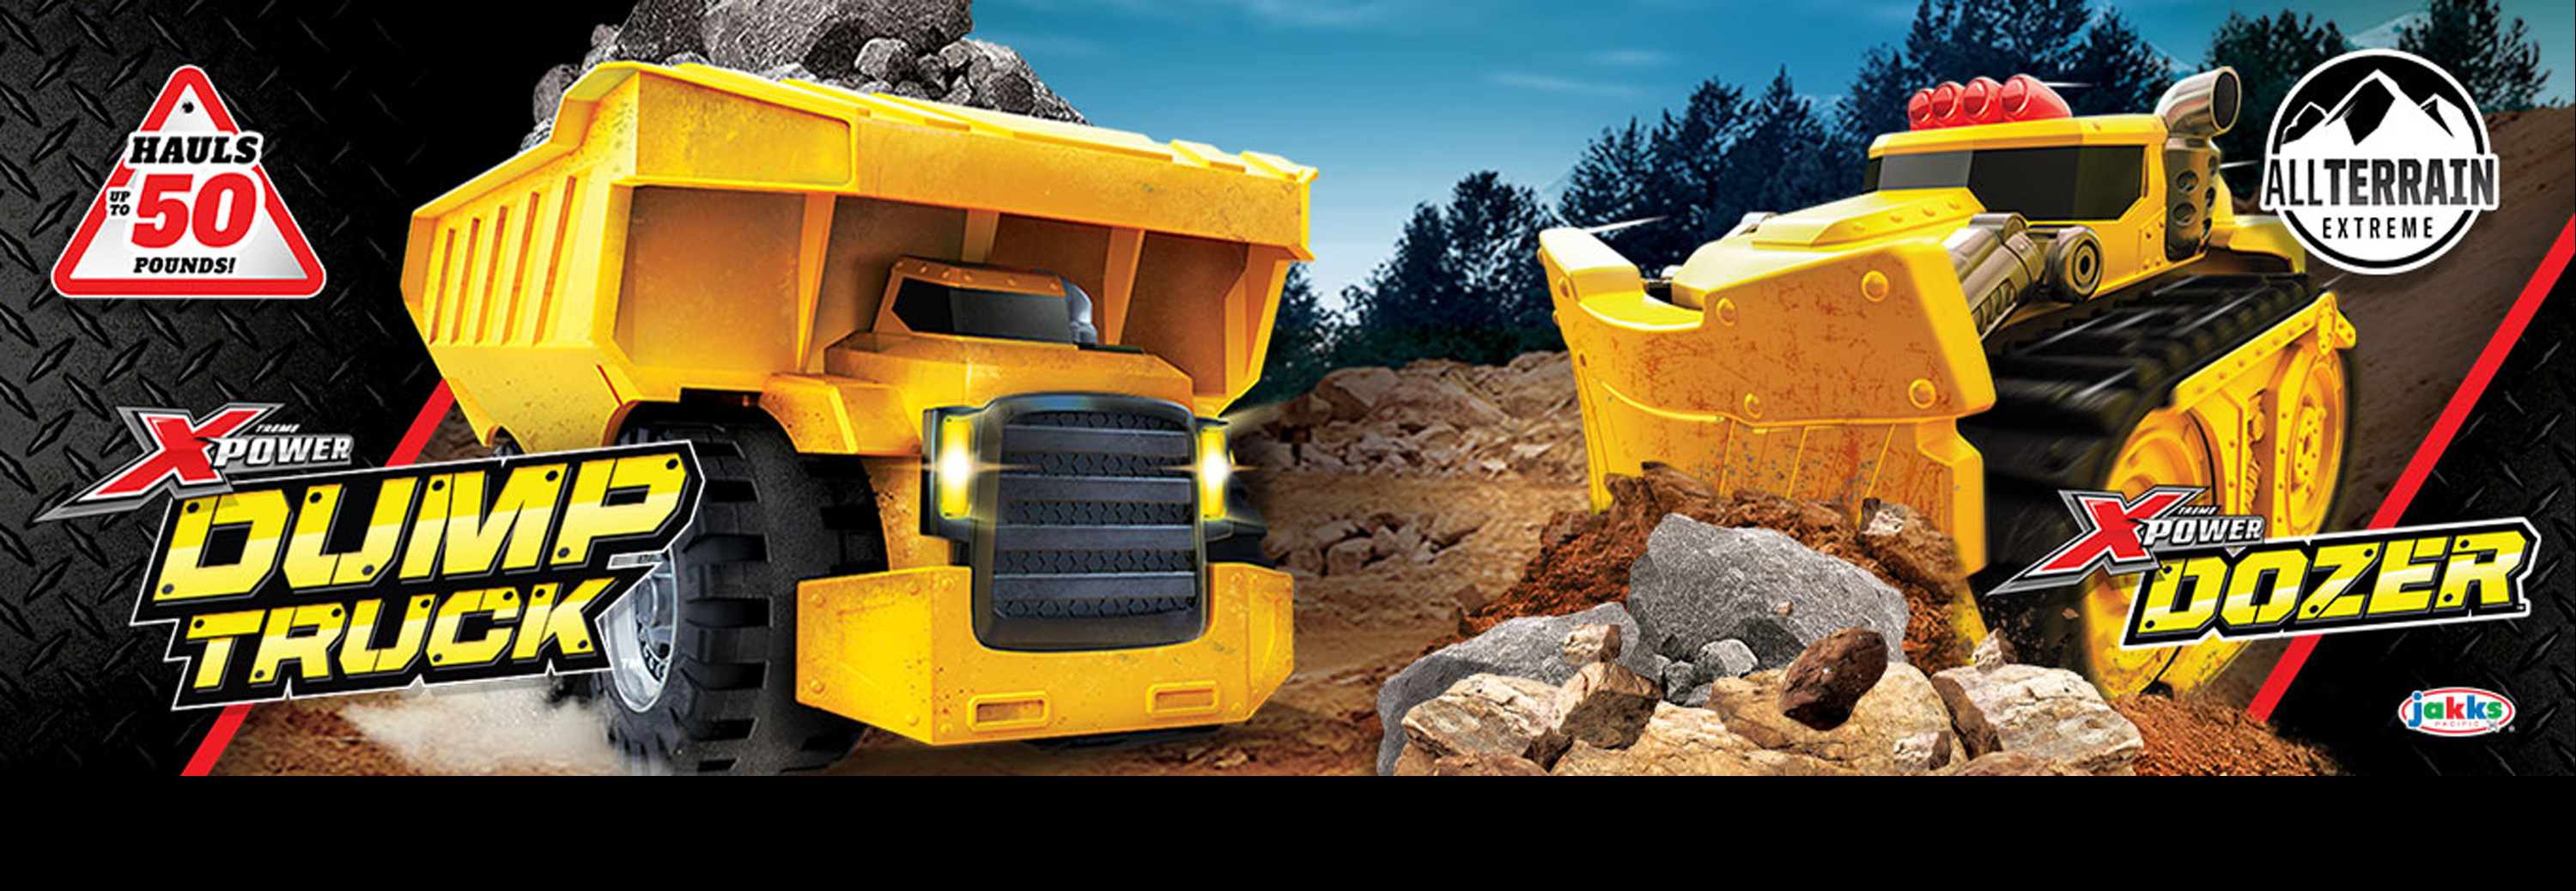 Xtreme Power Dozer and Dumptruck